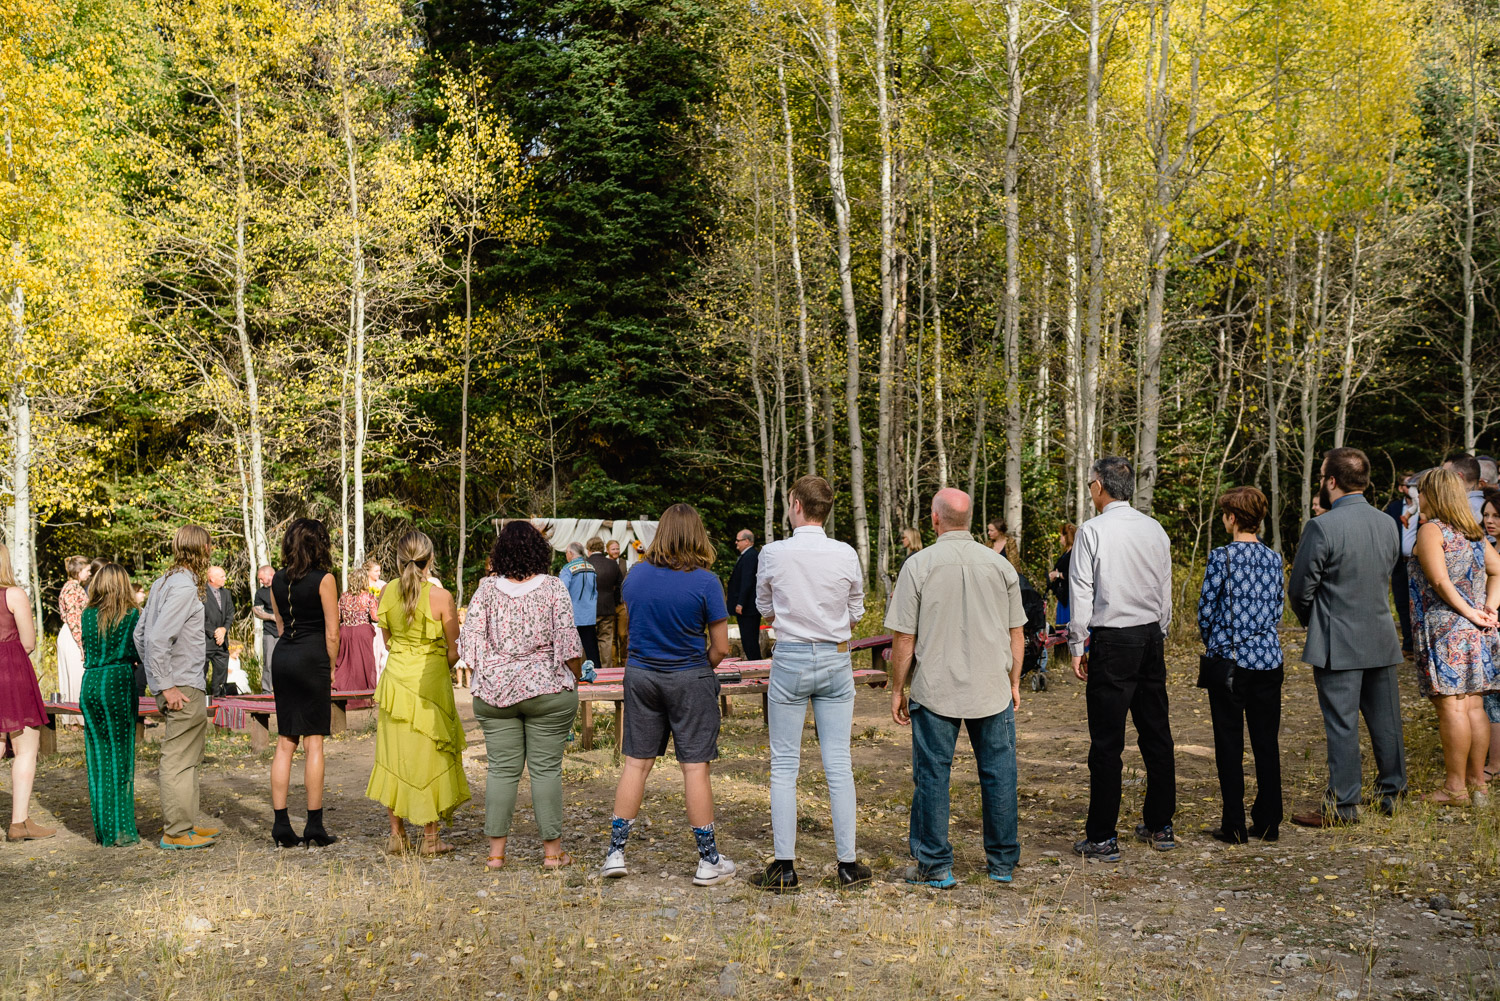 wedding guests in big circle outside aspen trees spruces campground